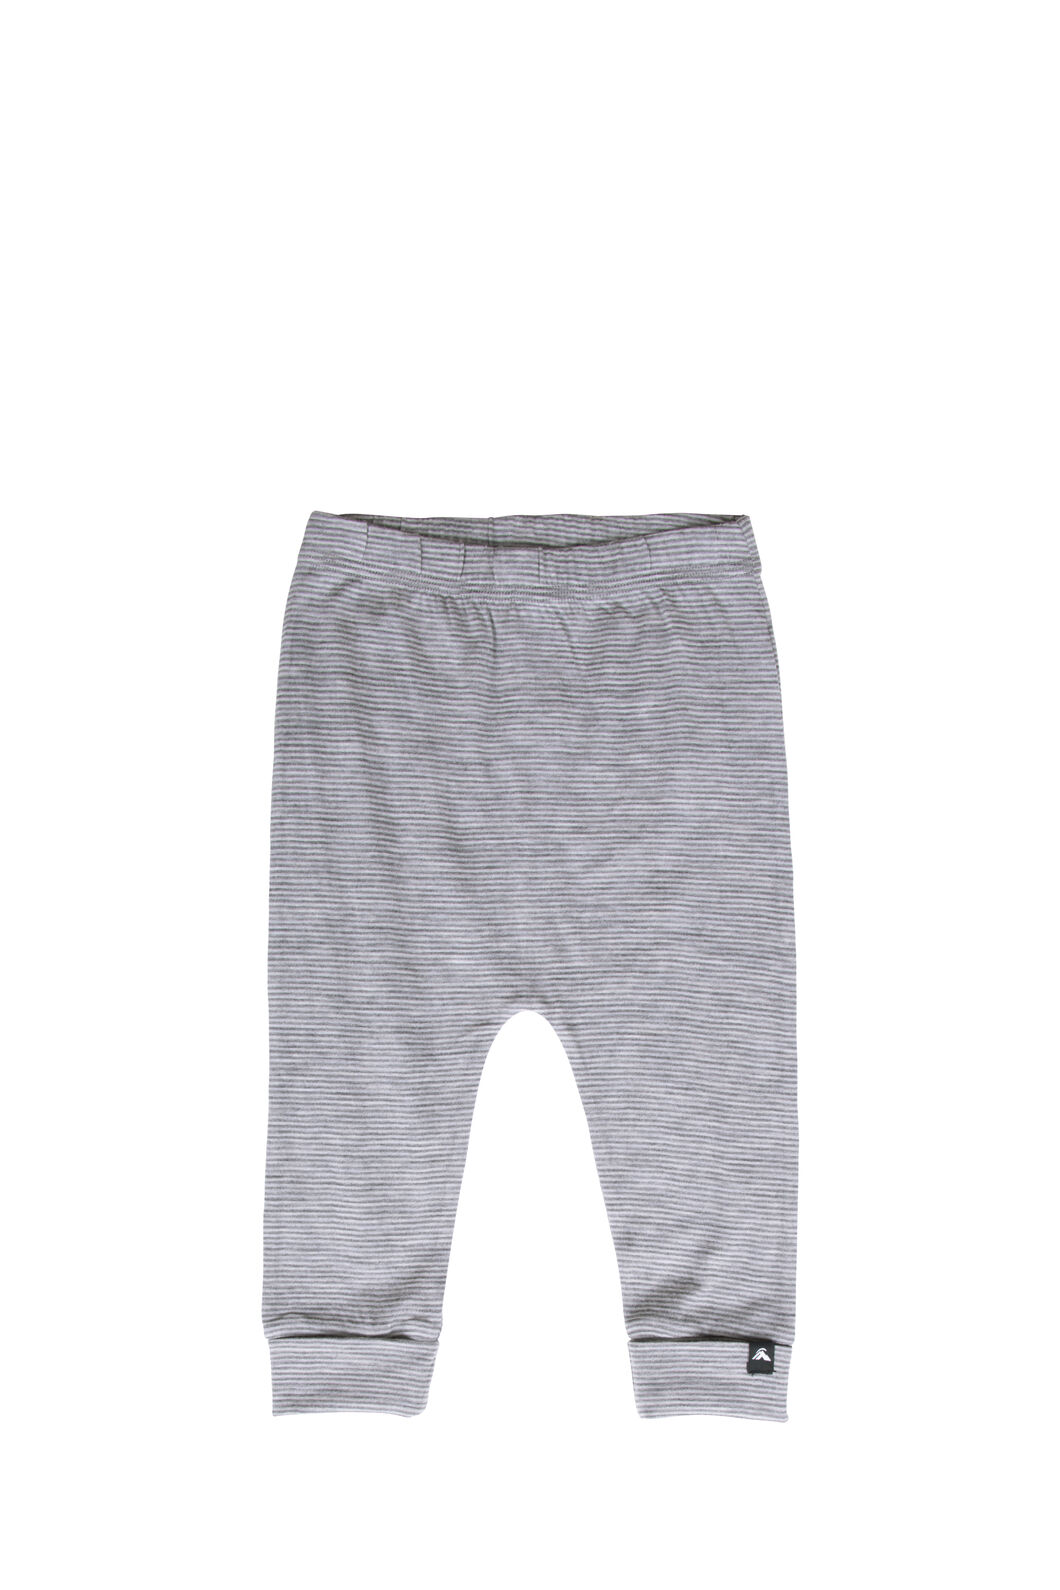 Macpac 150 Merino Long Johns — Baby, Light Grey Stripe, hi-res